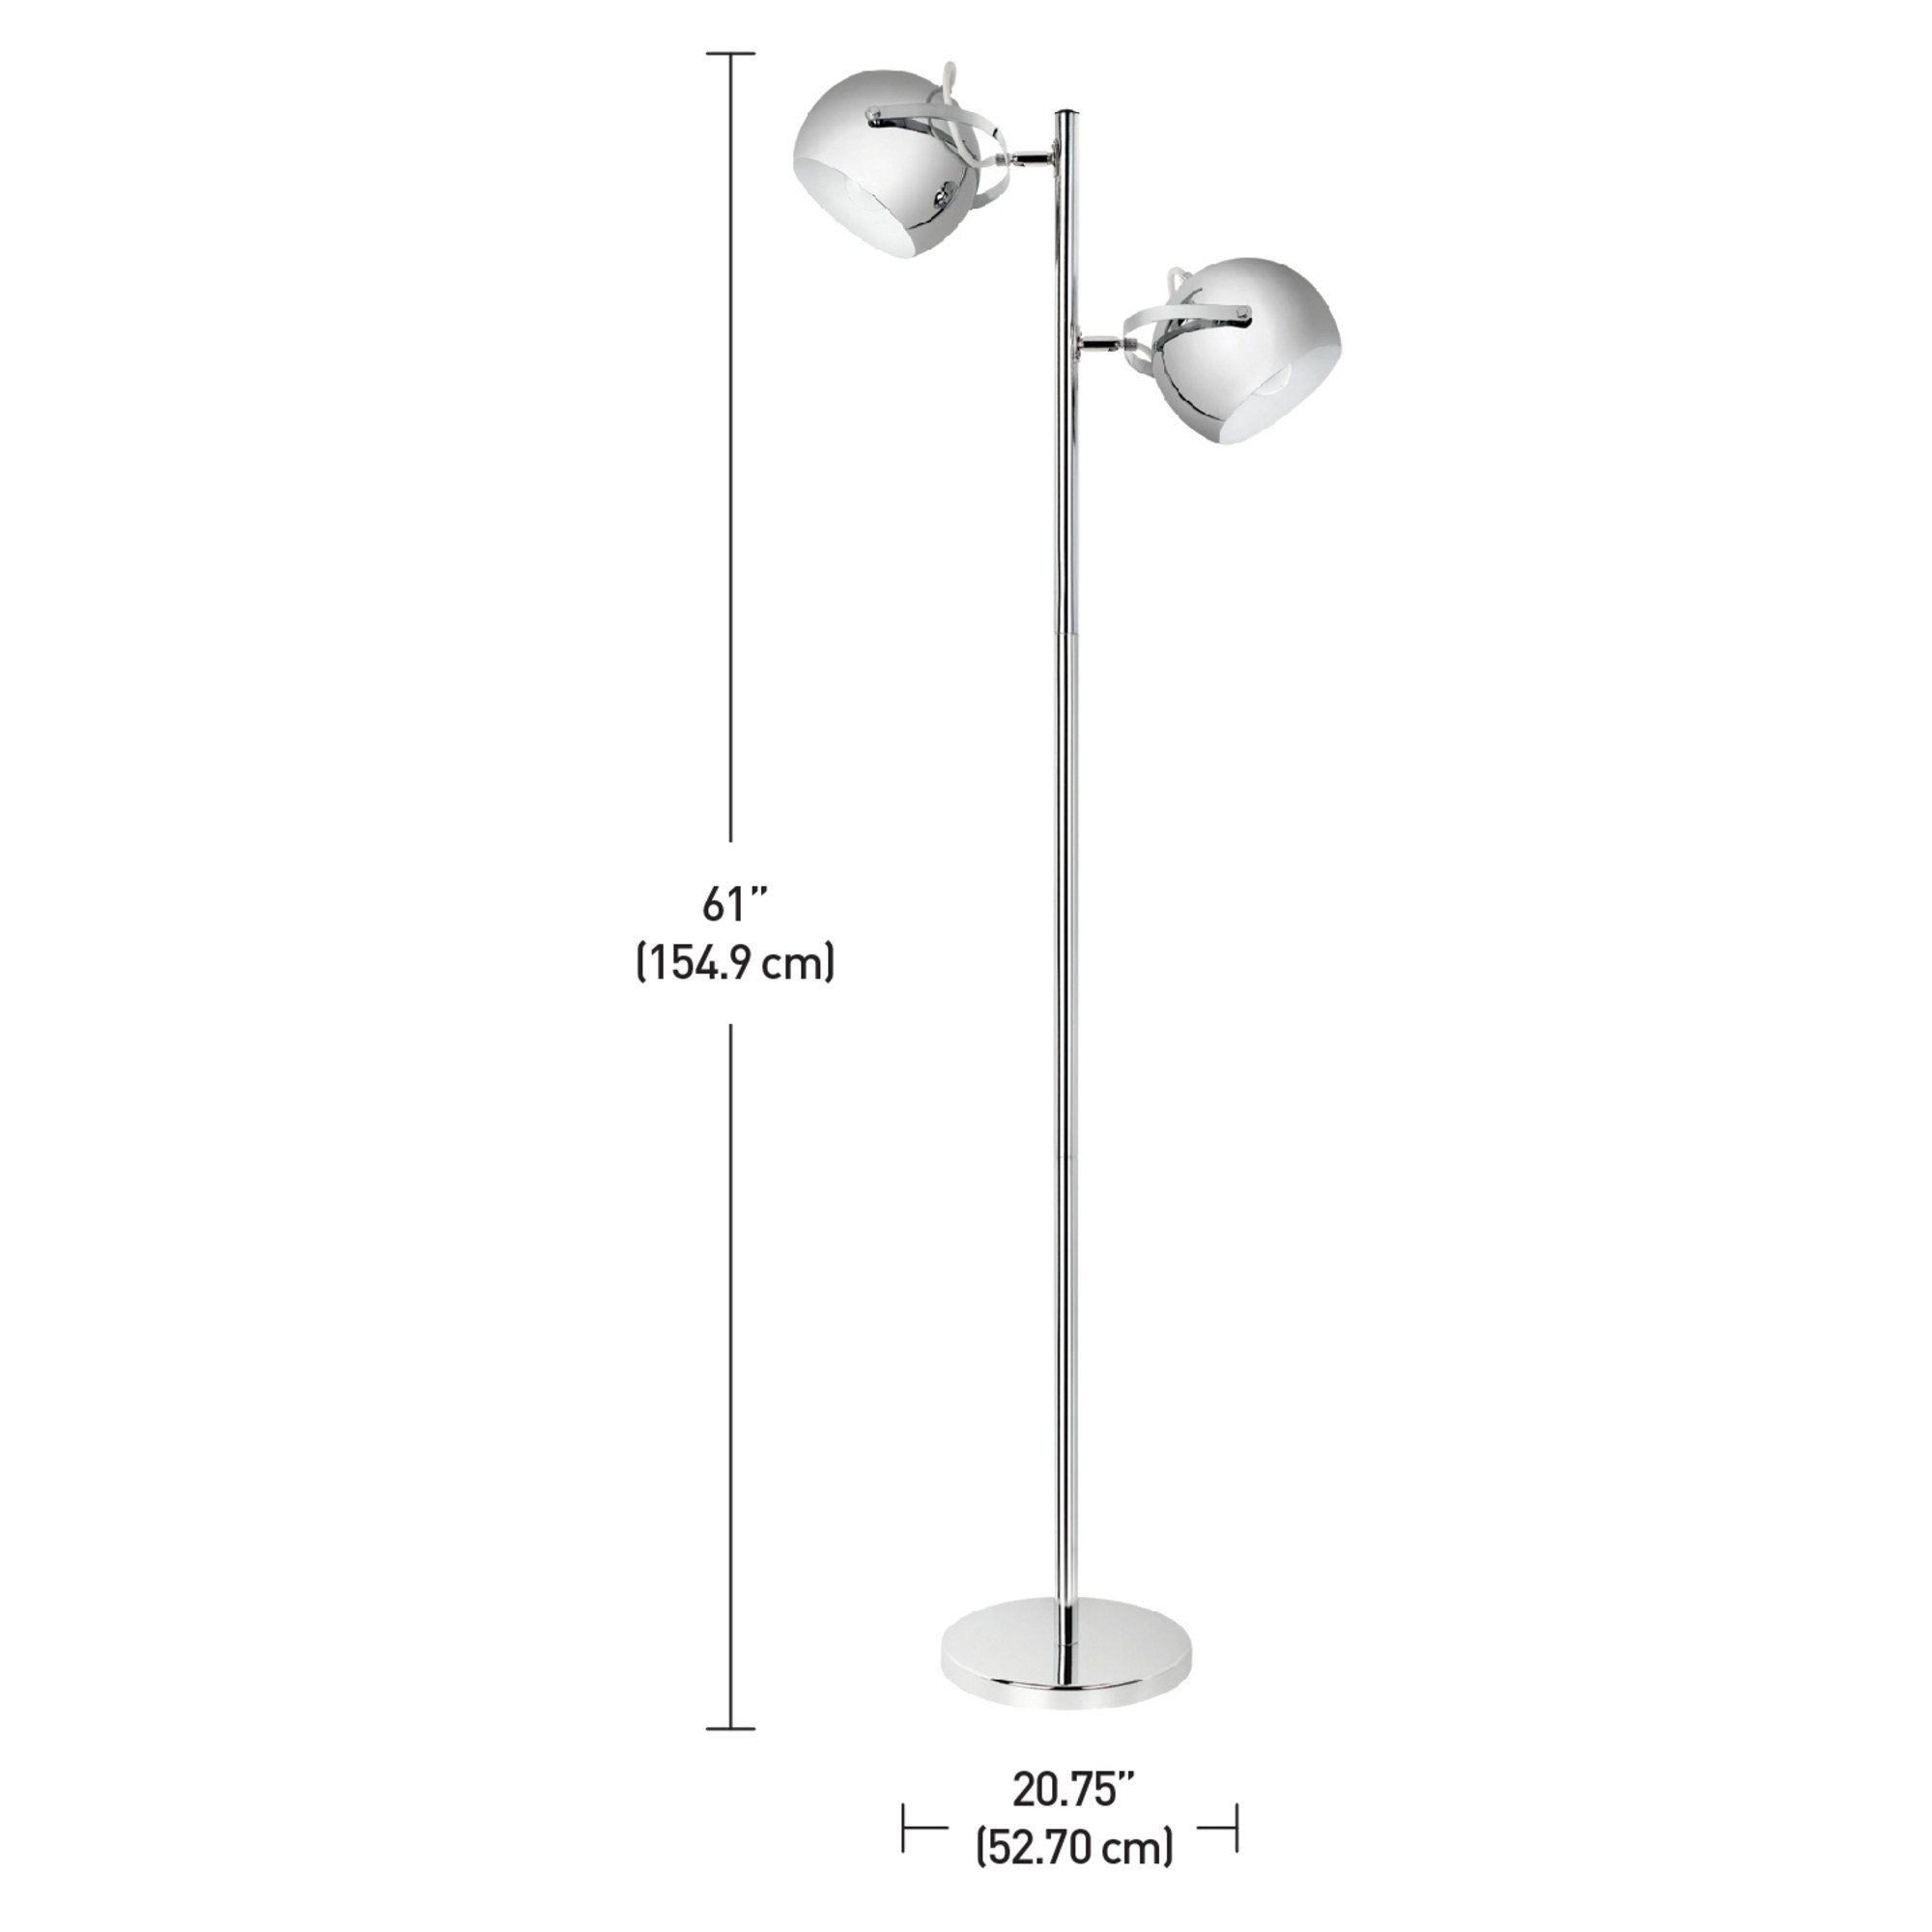 Globe Electric Miles 2-Light Adjustable Head Floor Lamp, On/Off Foot Switch, Chrome Finish, 12807 by Globe Electric (Image #5)